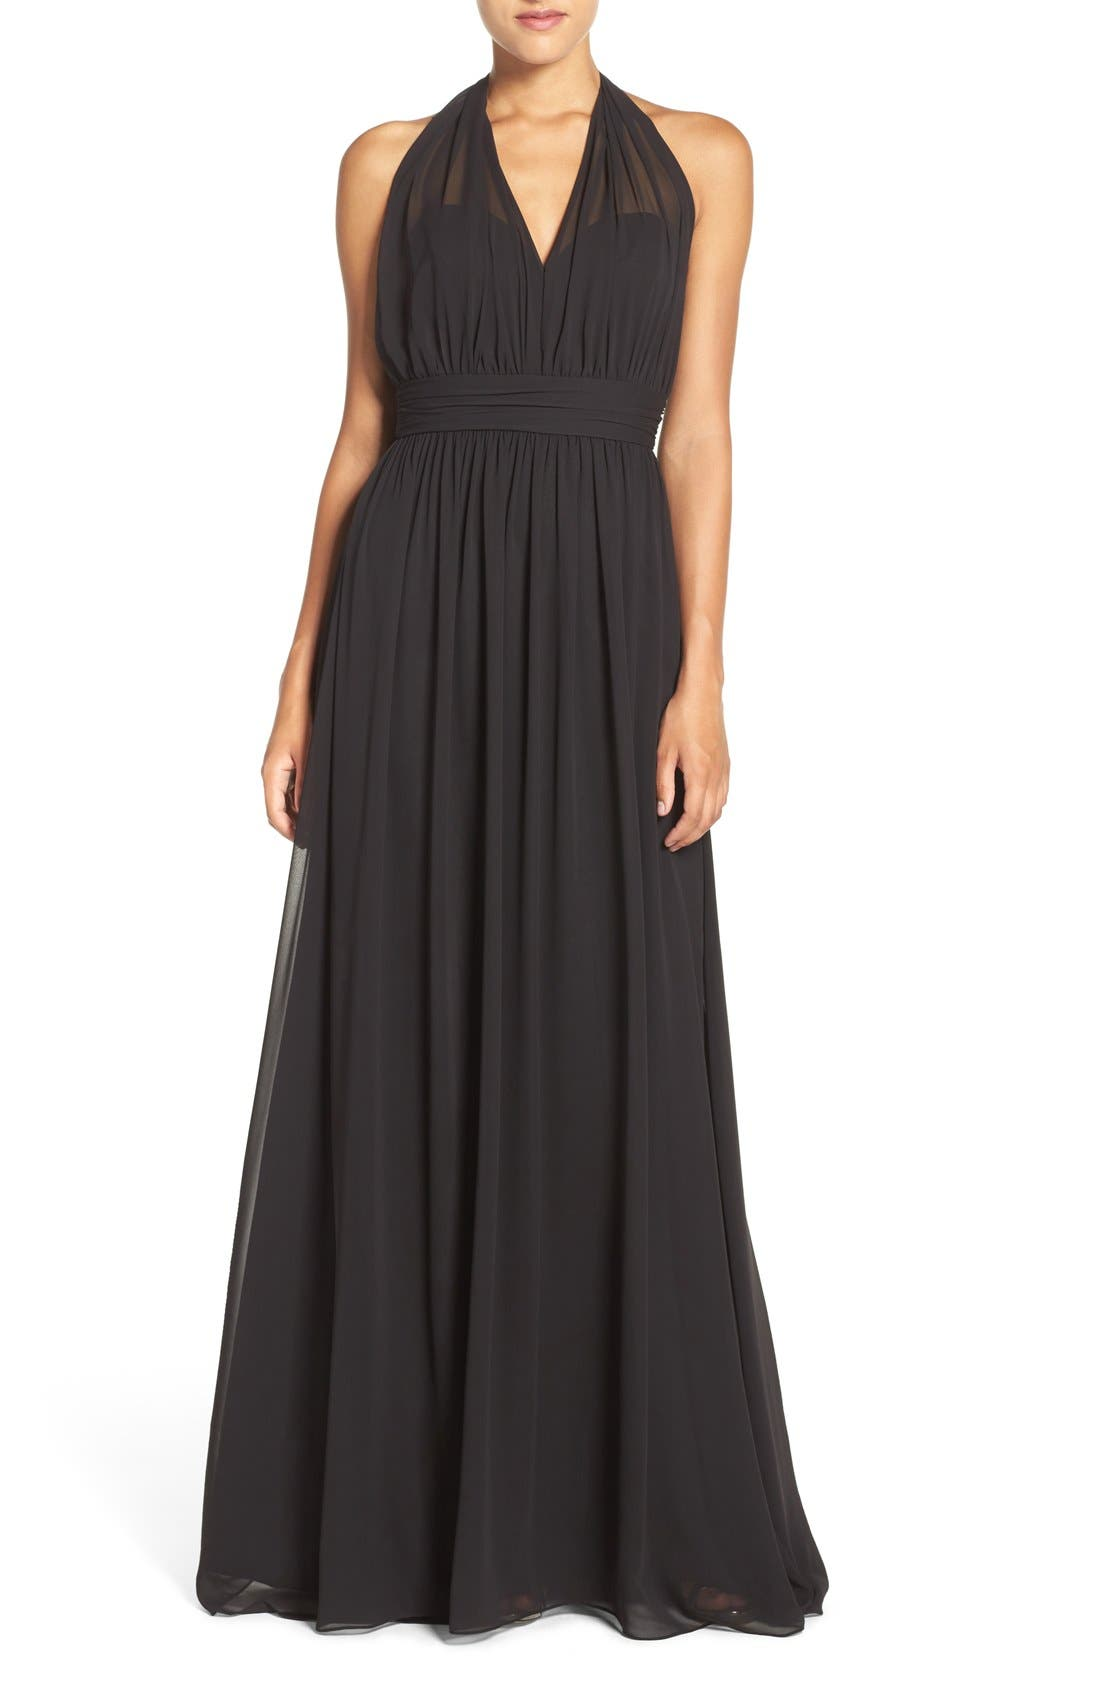 Main Image - Hayley Paige Occasions Ruched Waist Chiffon Halter Gown